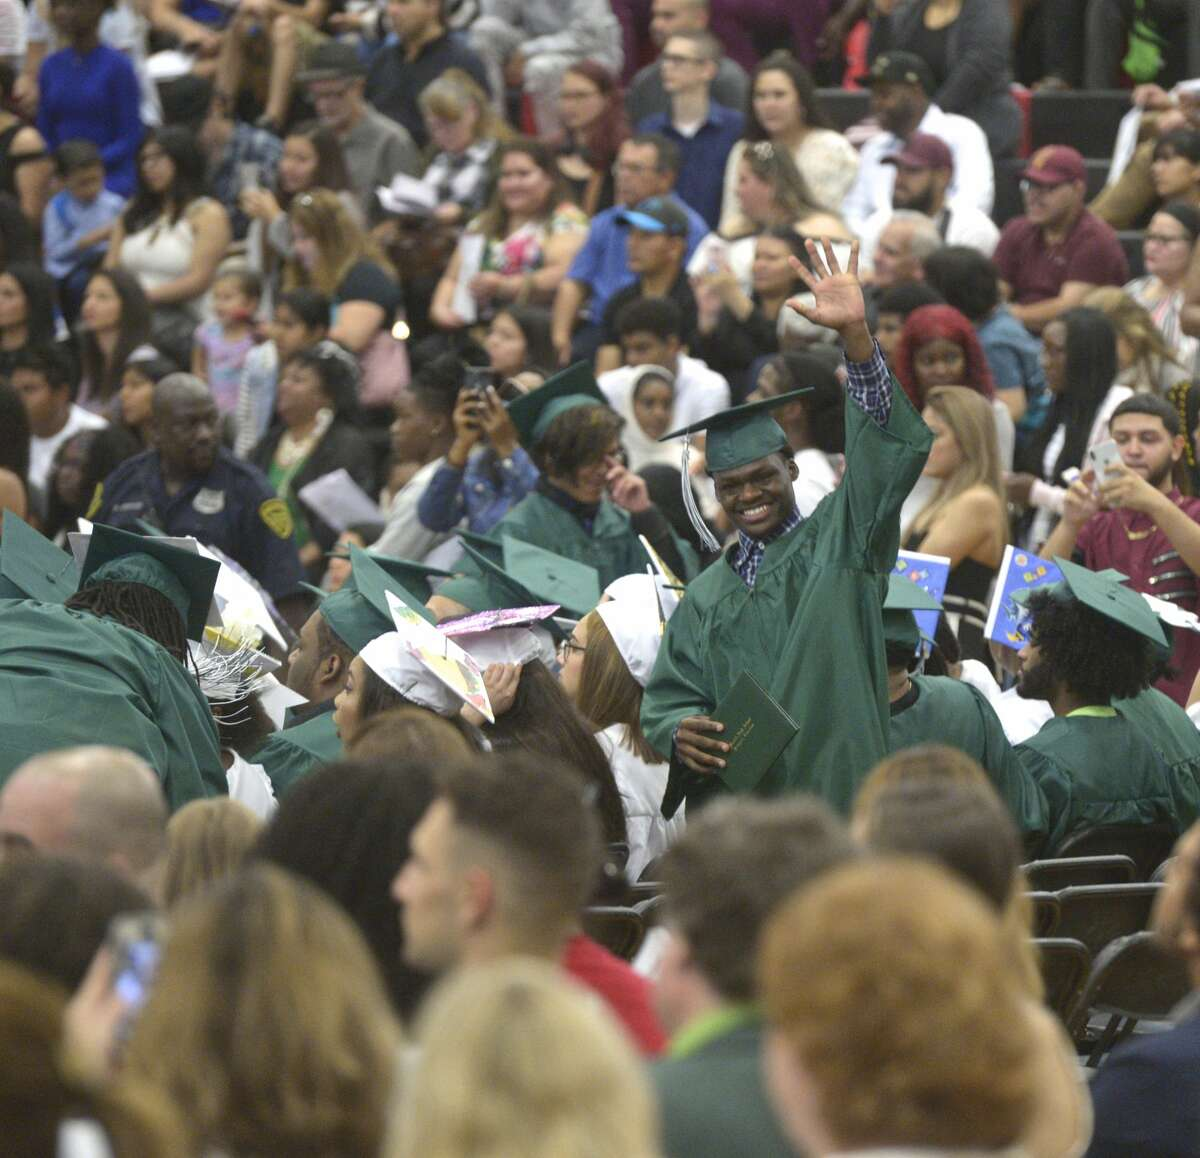 The Class of 2019 Bassick High School Commencement Exercise, Tuesday, June 18, 2019, at Central High School, Bridgeport, Conn.